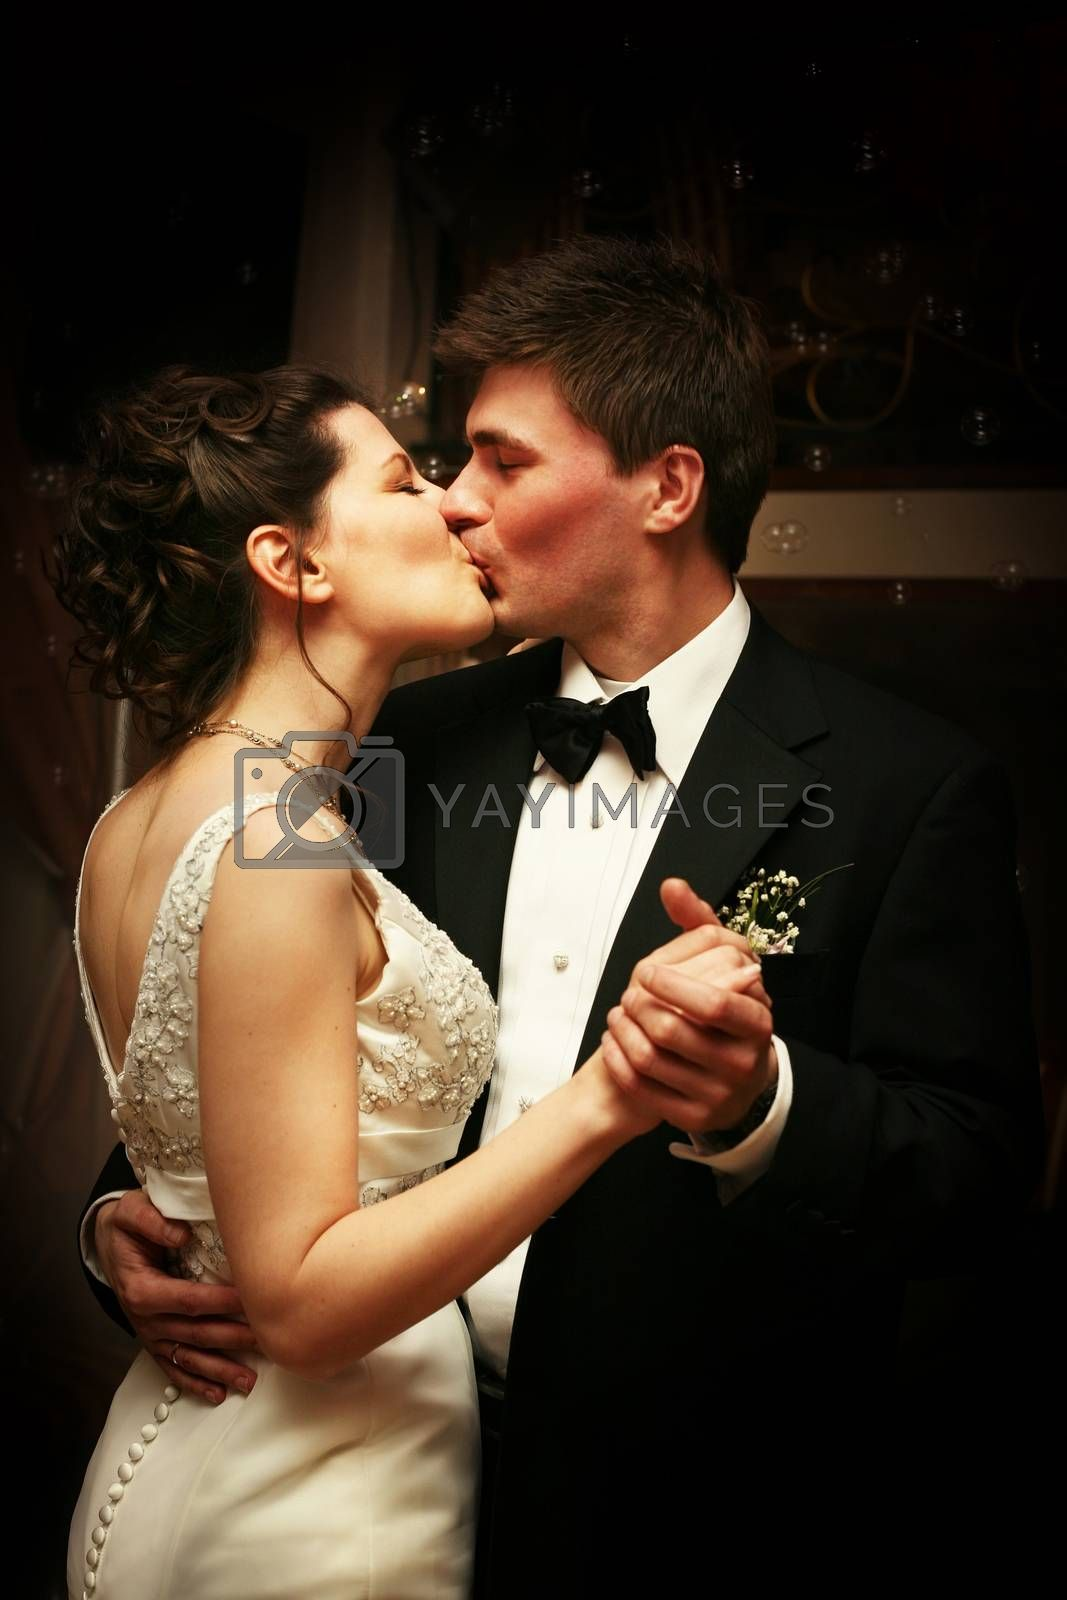 Newlyweds kiss dancing by friday